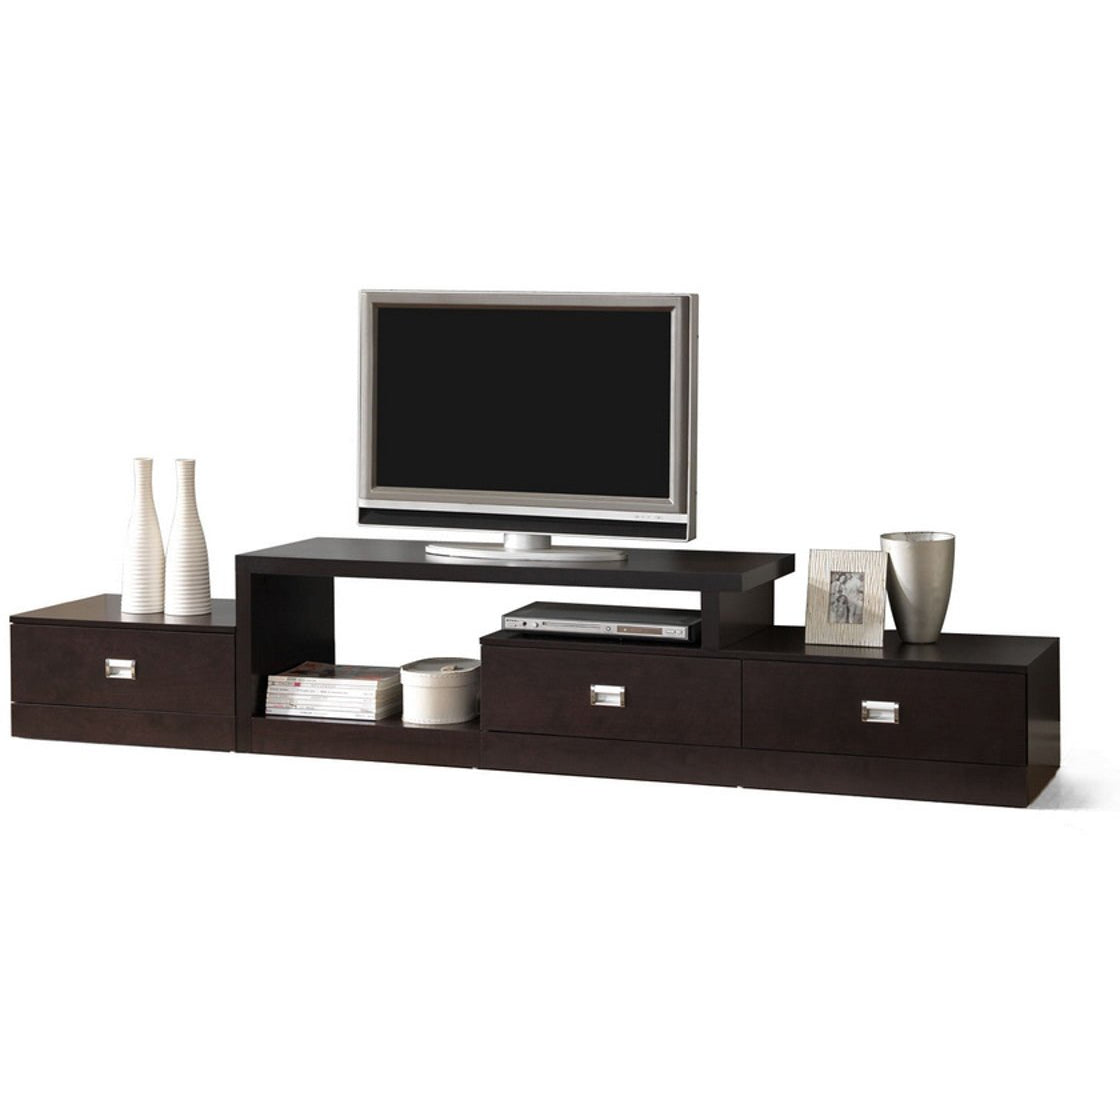 Baxton Studio Marconi Brown Asymmetrical Modern TV Stand Baxton Studio-TV Stands-Minimal And Modern - 1